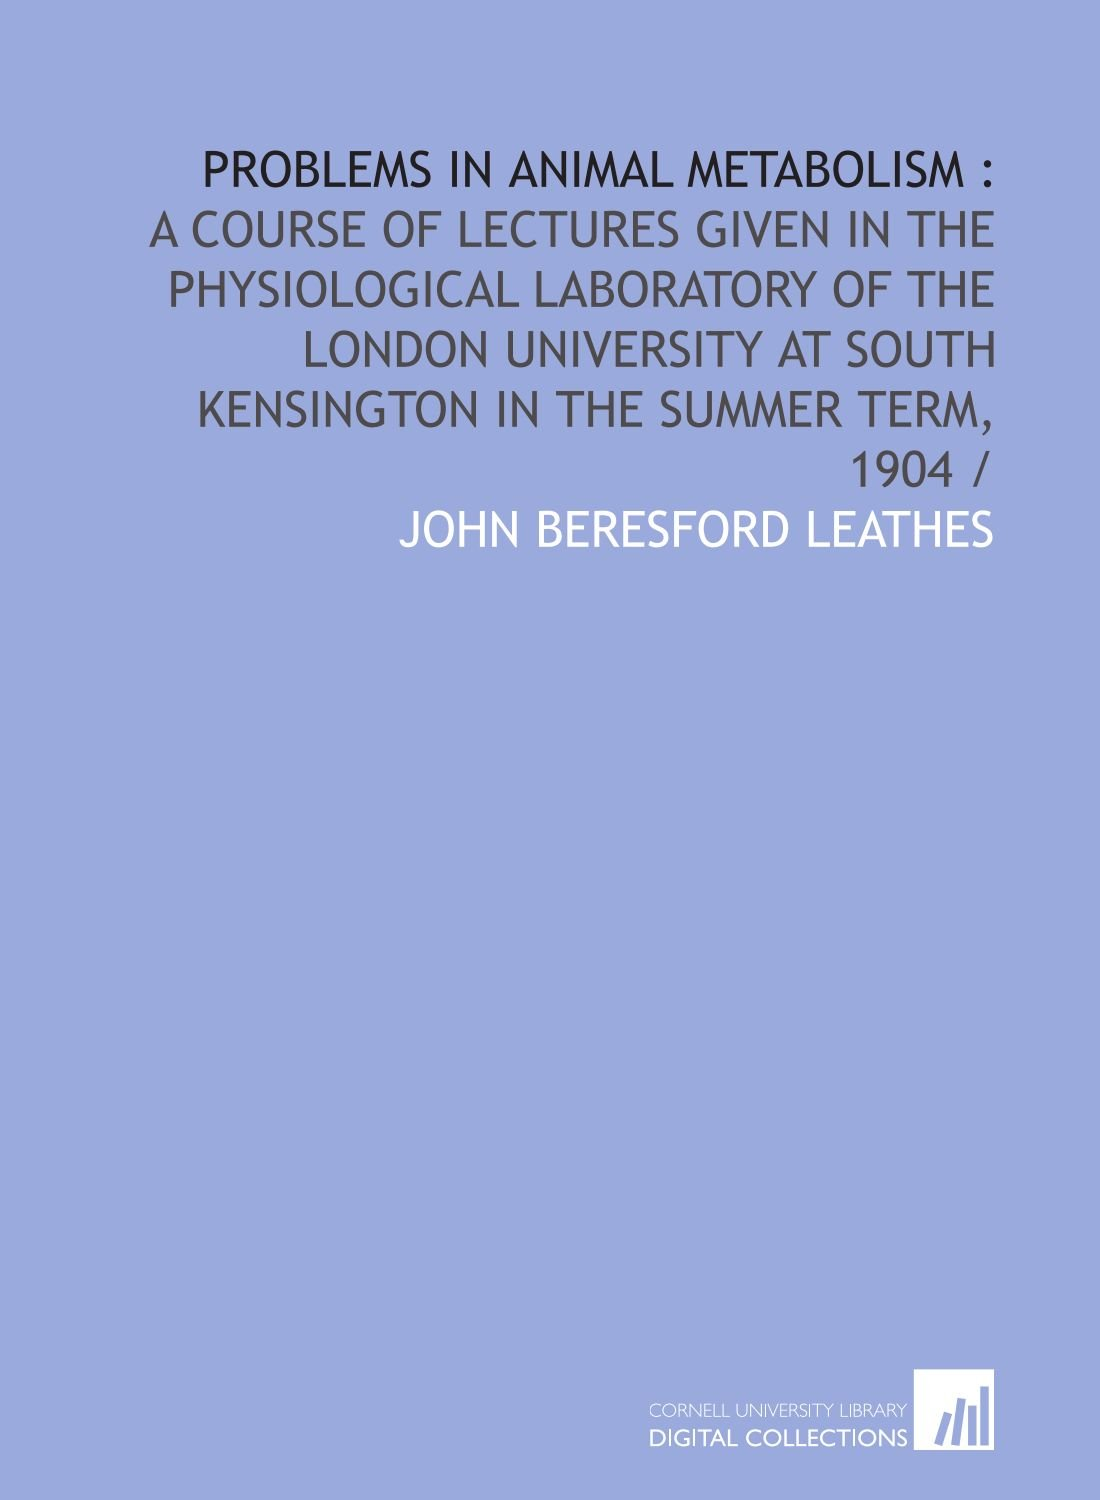 Problems in animal metabolism :: a course of lectures given in the physiological laboratory of the London University at South Kensington in the summer term, 1904 / ebook